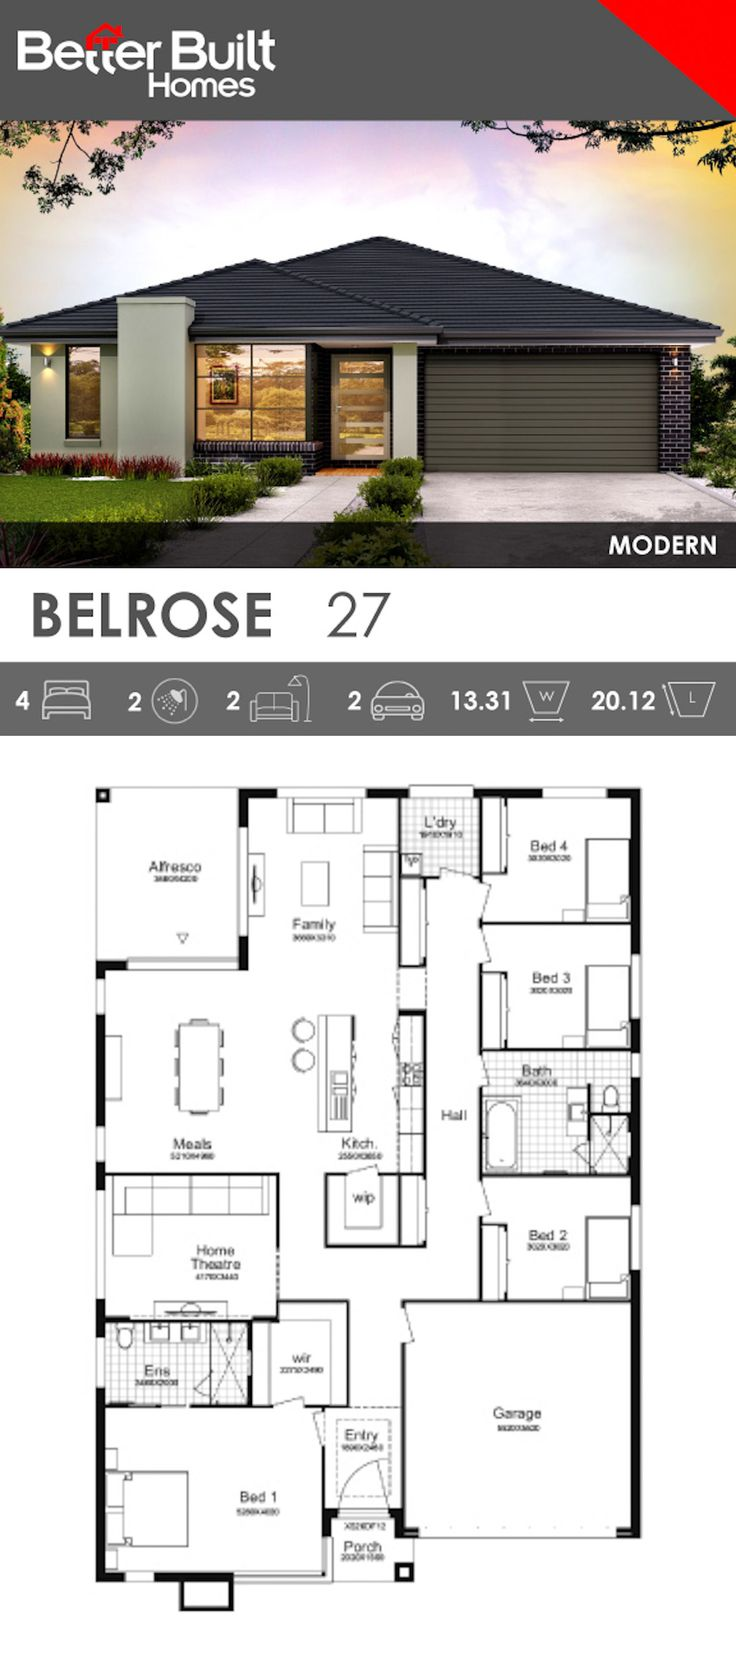 Single storey house design the belrose 27 an ideal family home for a growing